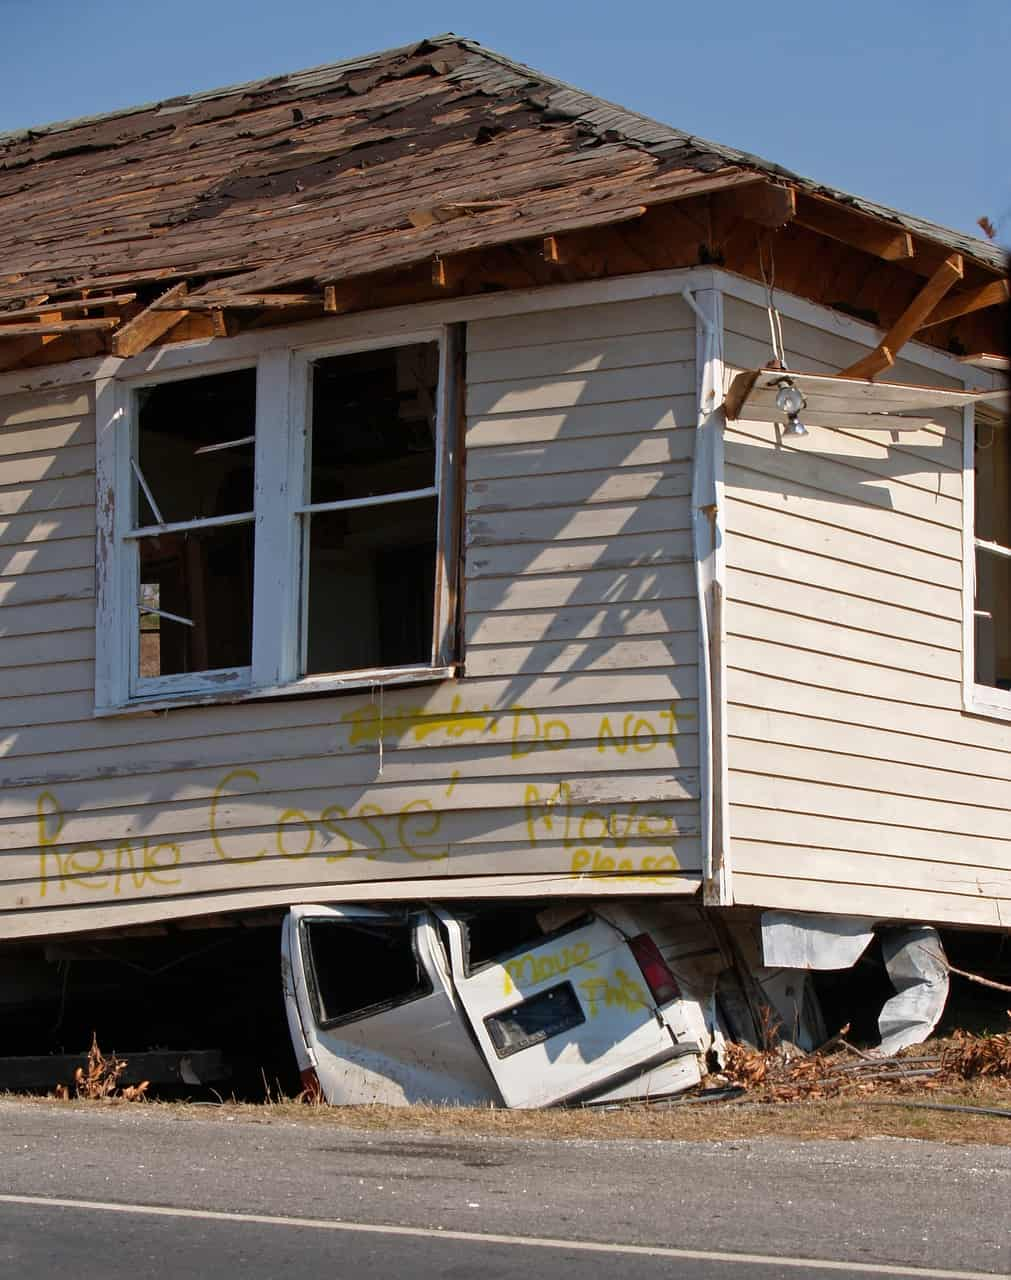 house crushed in extreme weather event